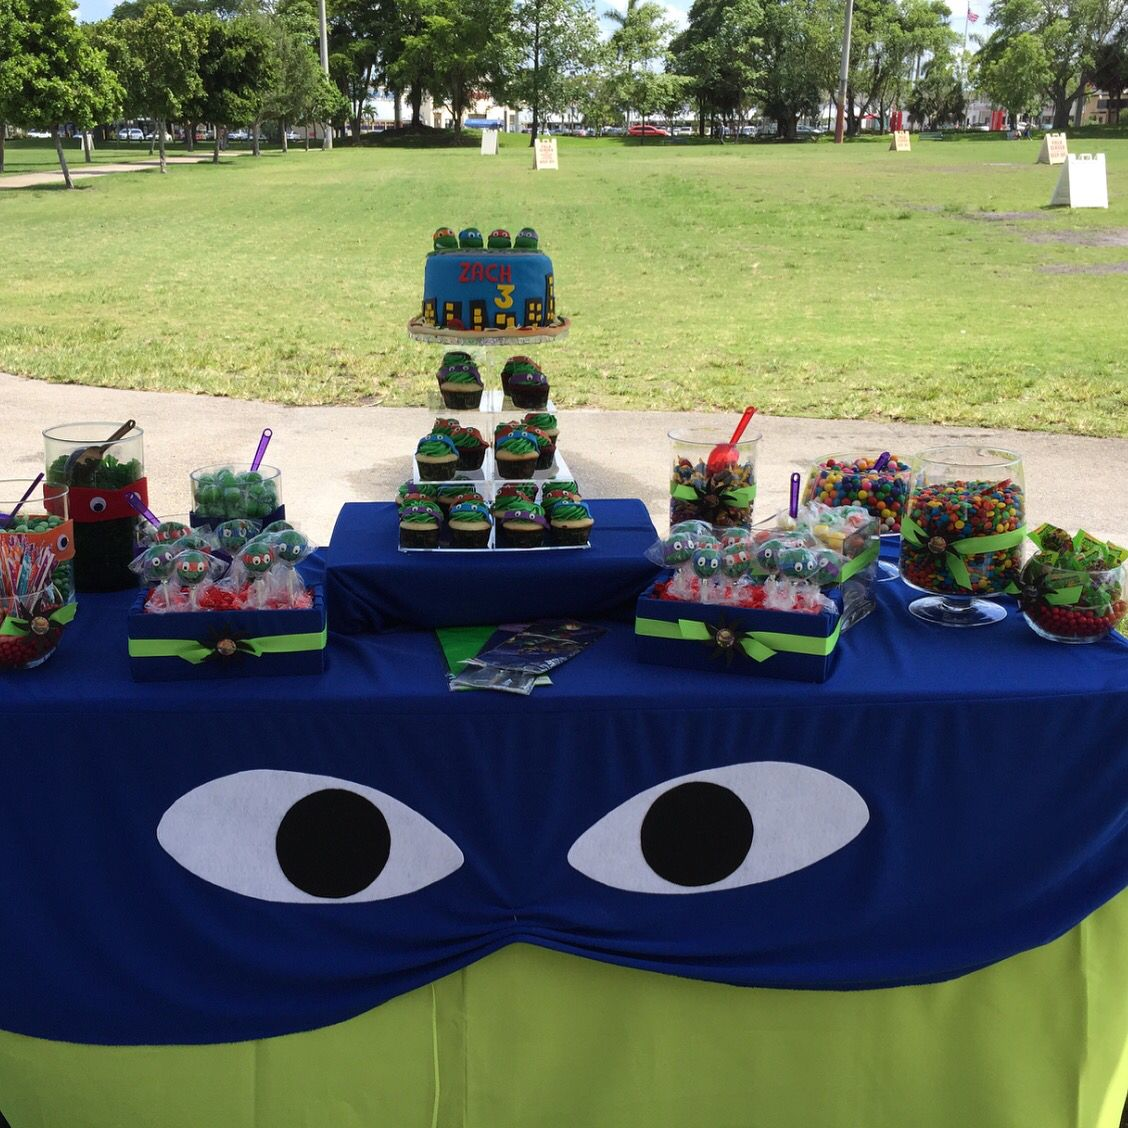 Gmail ninja theme - Teenage Mutant Ninja Turtles Are Characters All Boys Love That Makes This Theme Perfect For Boy S Parties Here Are Some Ideas For Such Party